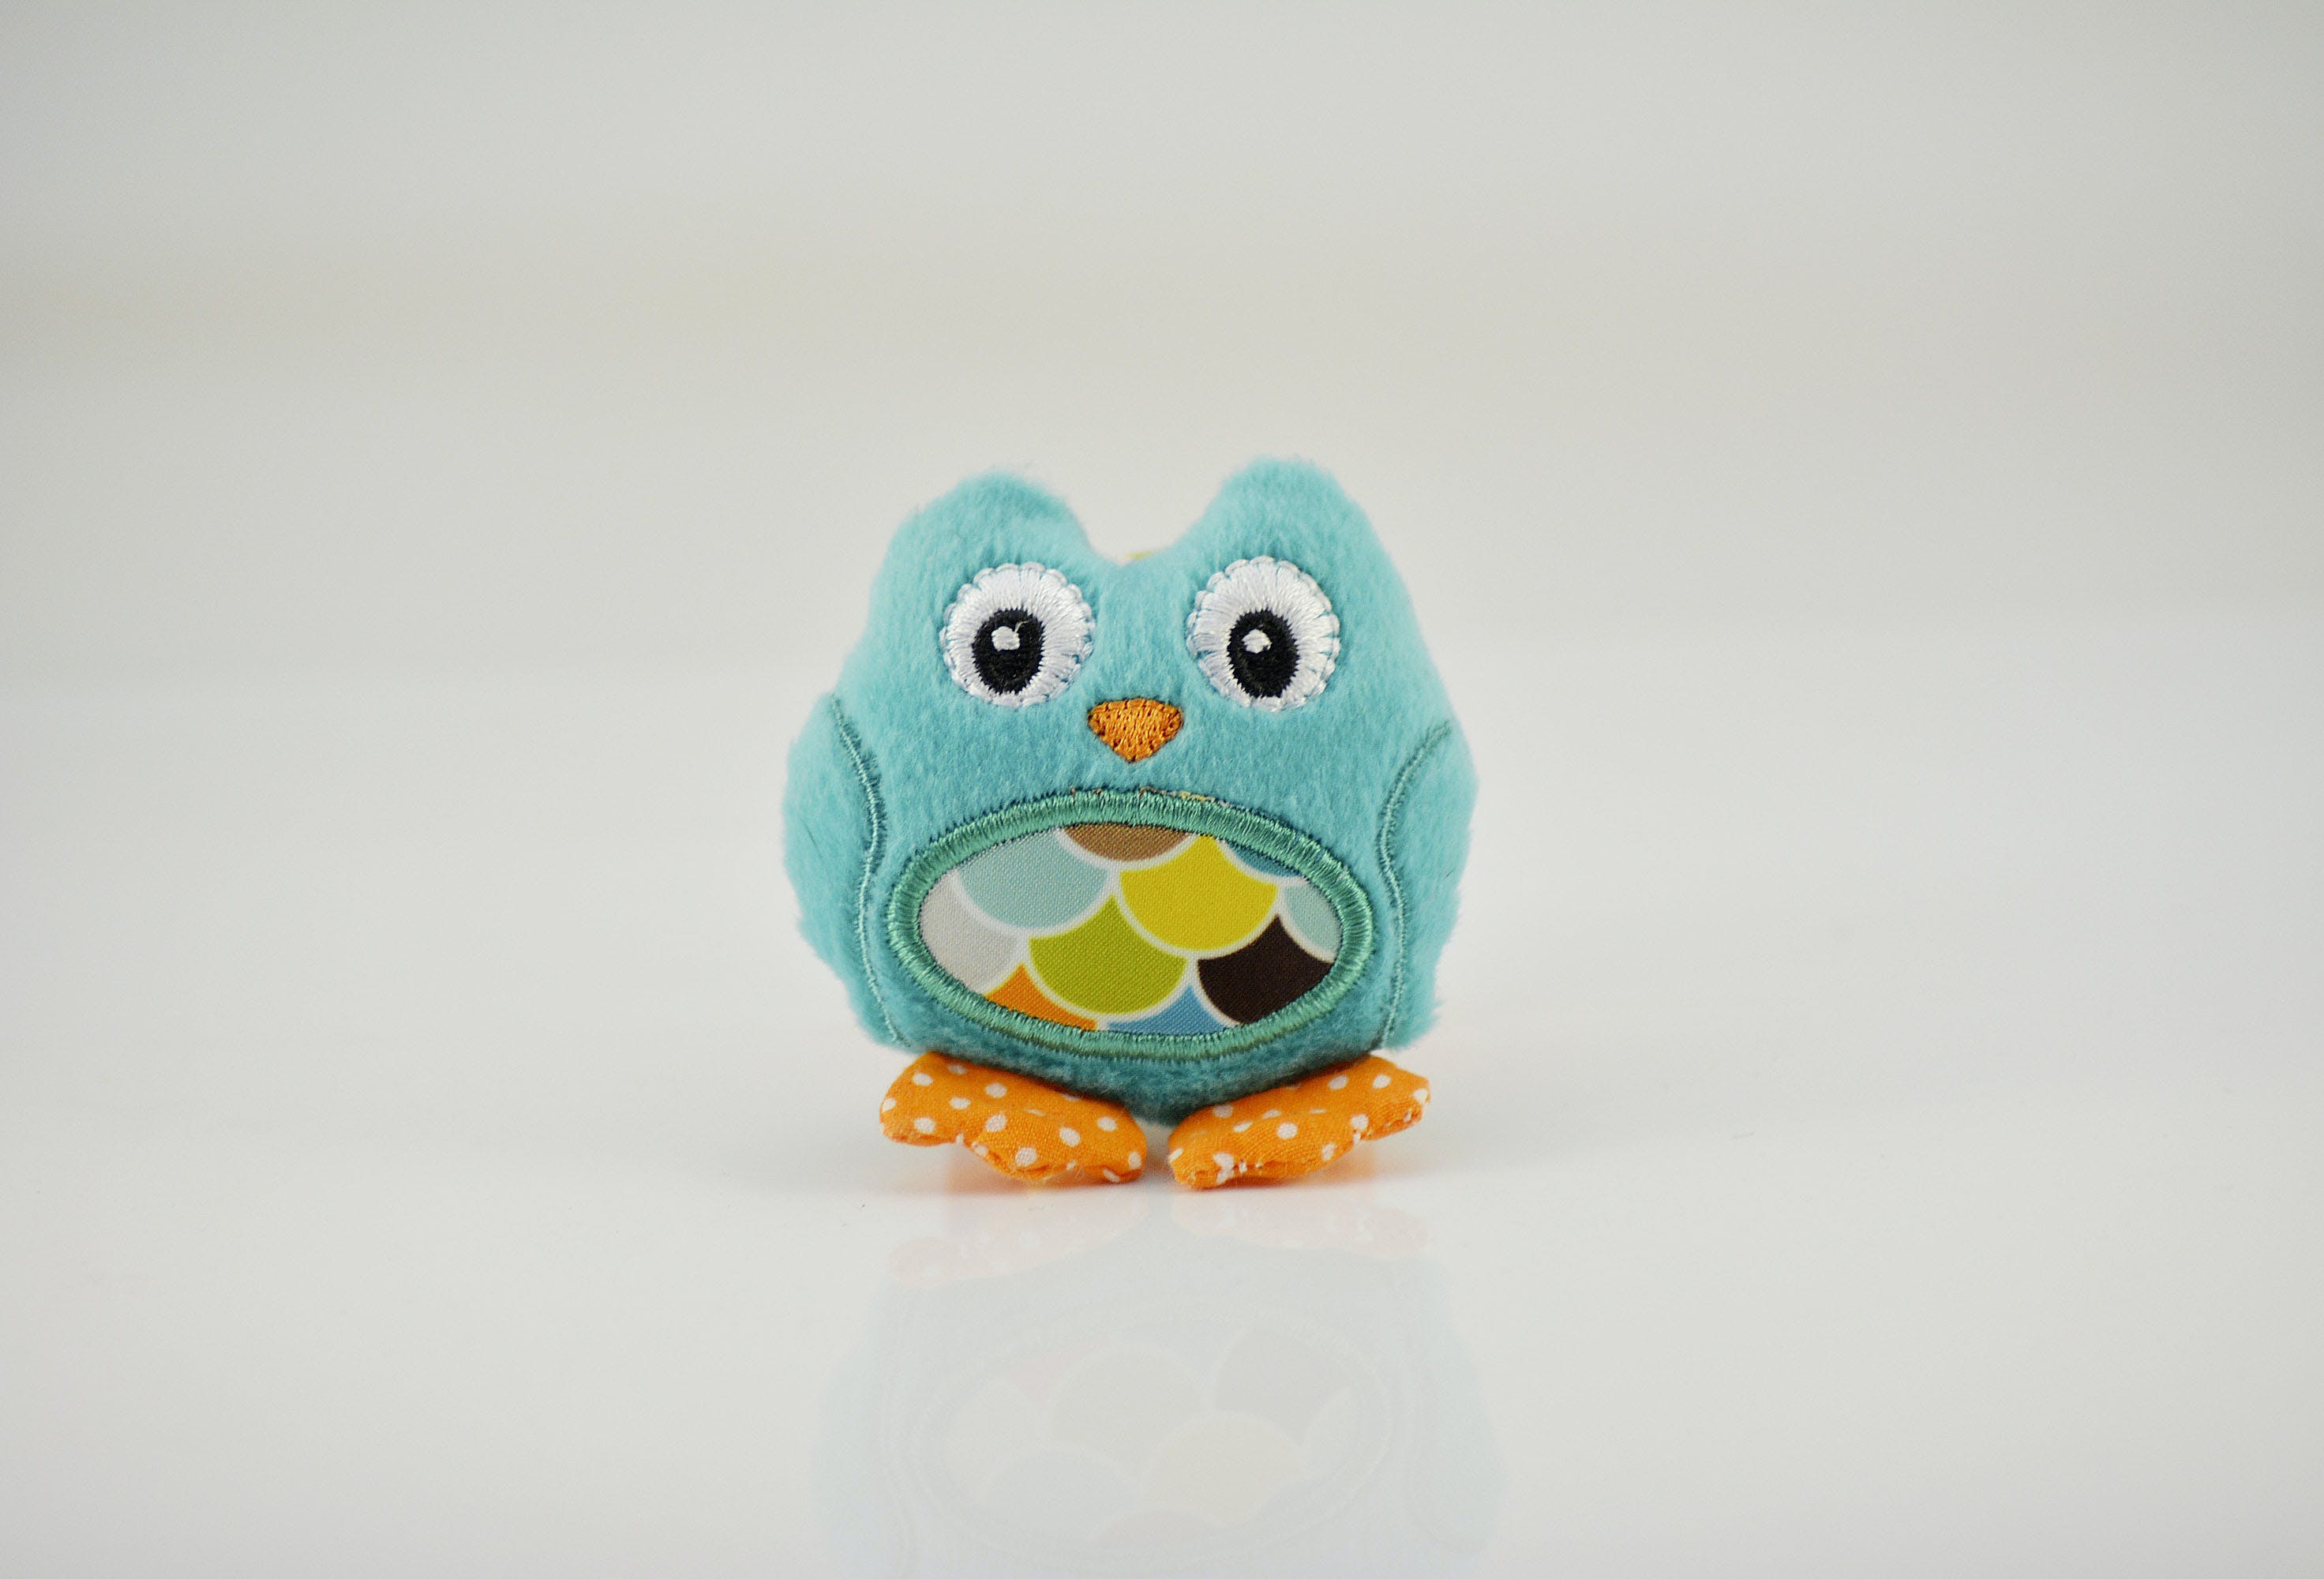 Blue Bird Plush Toy